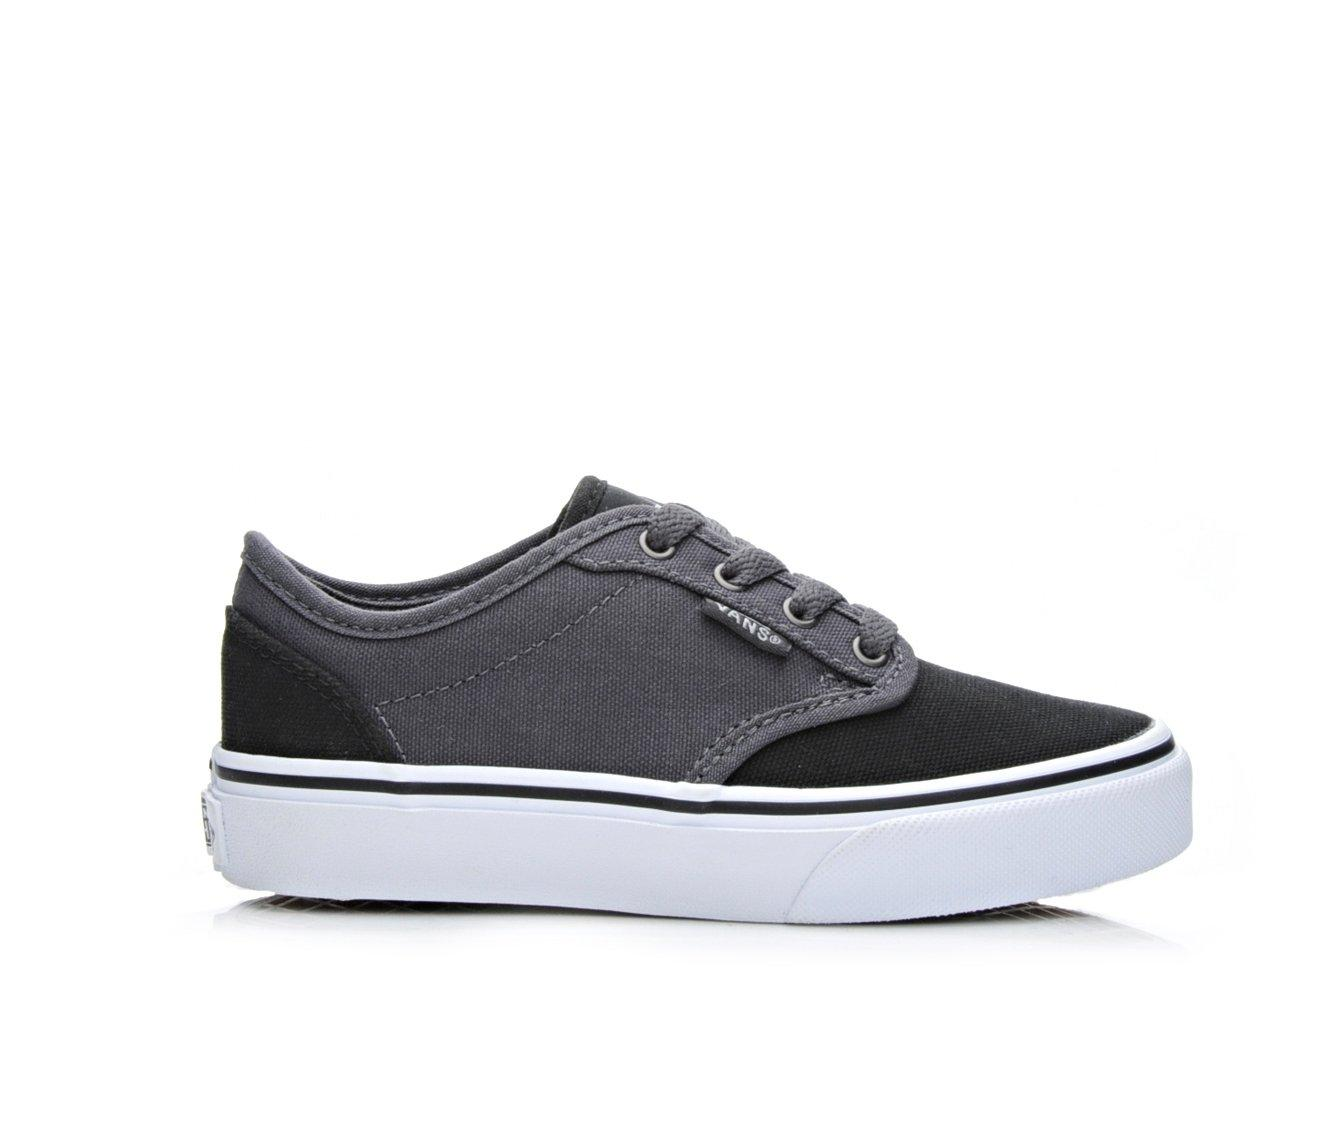 Roller shoes vans - Atwood 10 5 7